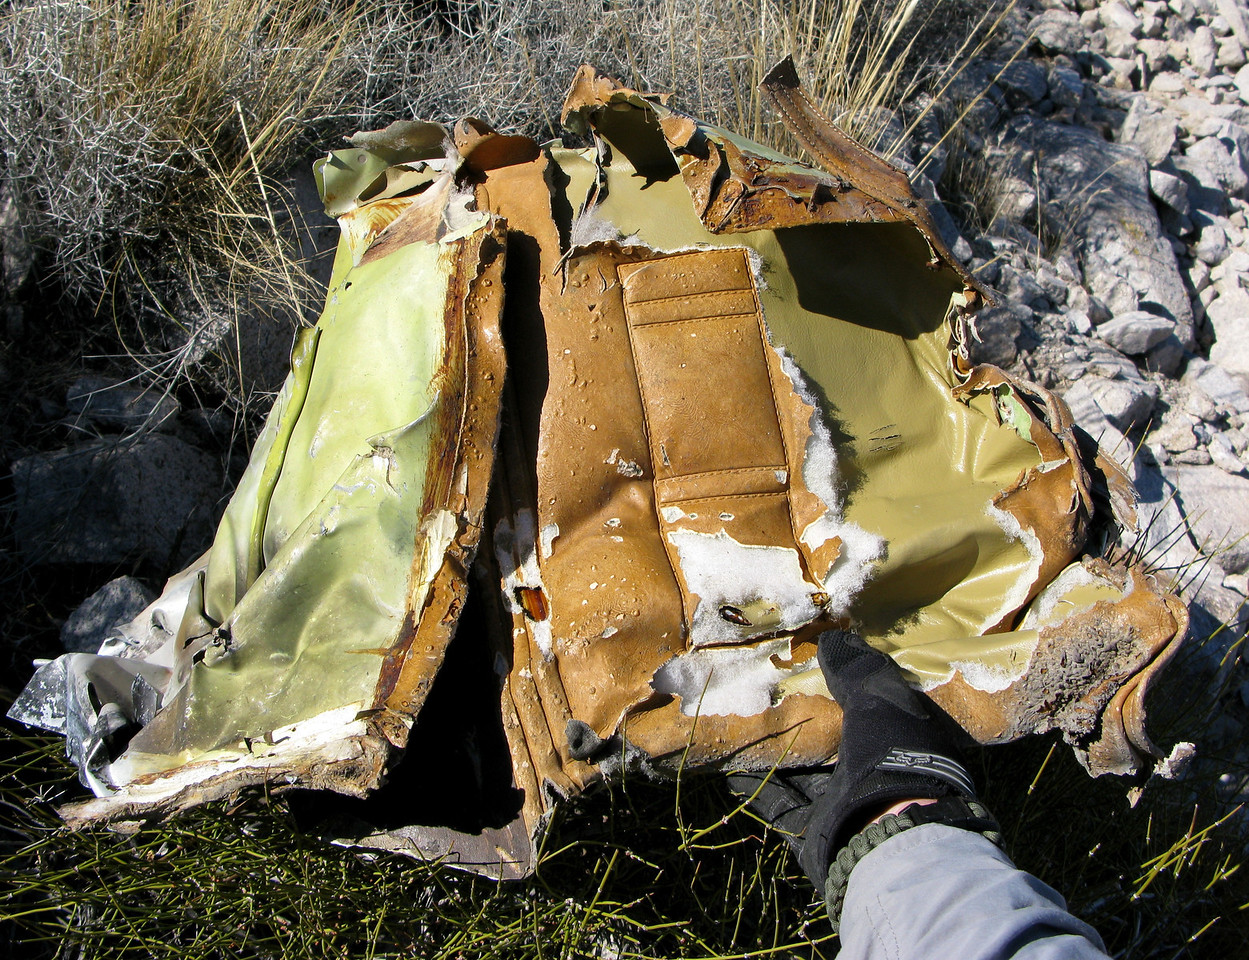 Some of the vinyl interior fabric from the passenger cabin had evidence of heat damage, but for the most part this fragment escaped much of the fire.